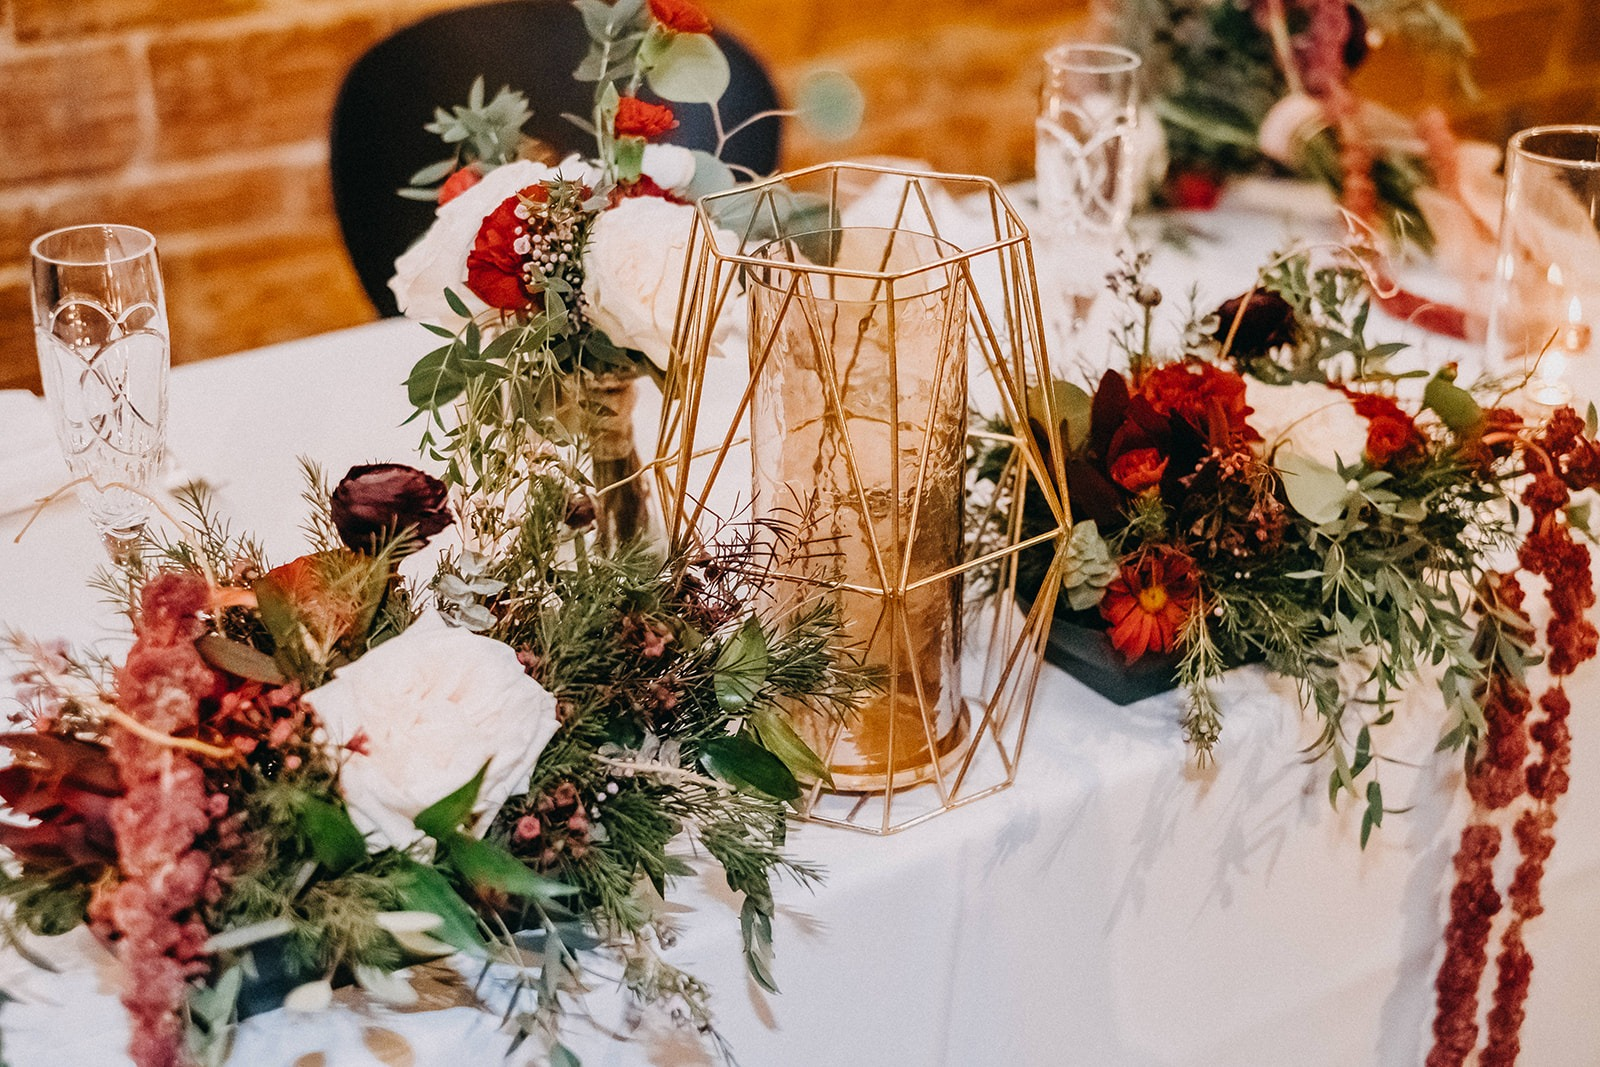 Vintage Christmas Inspired Wedding Decor at Historic Tampa Bay Wedding Venue NOVA 535 in Downtown St. Pete